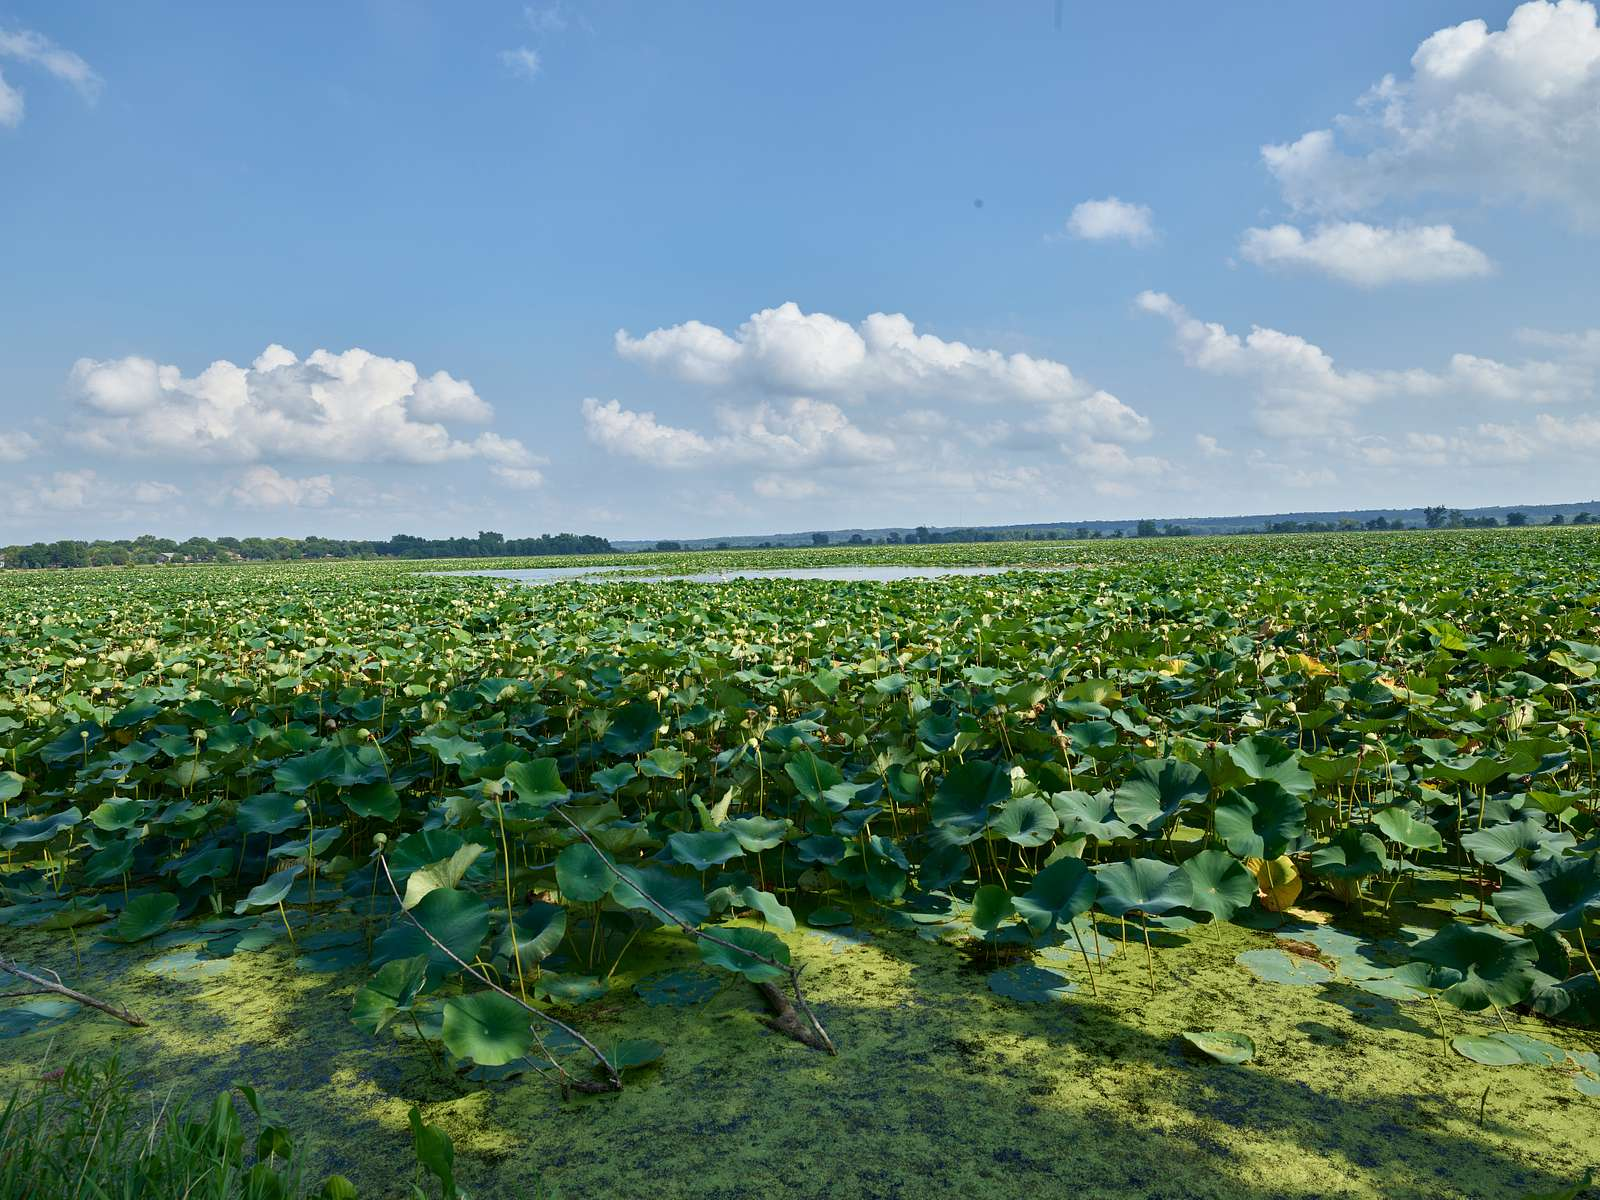 A veritable sea of lily pads between Amana and Middle Amana, two of the Amana Colonies, seven villages in Iowa County, Iowa